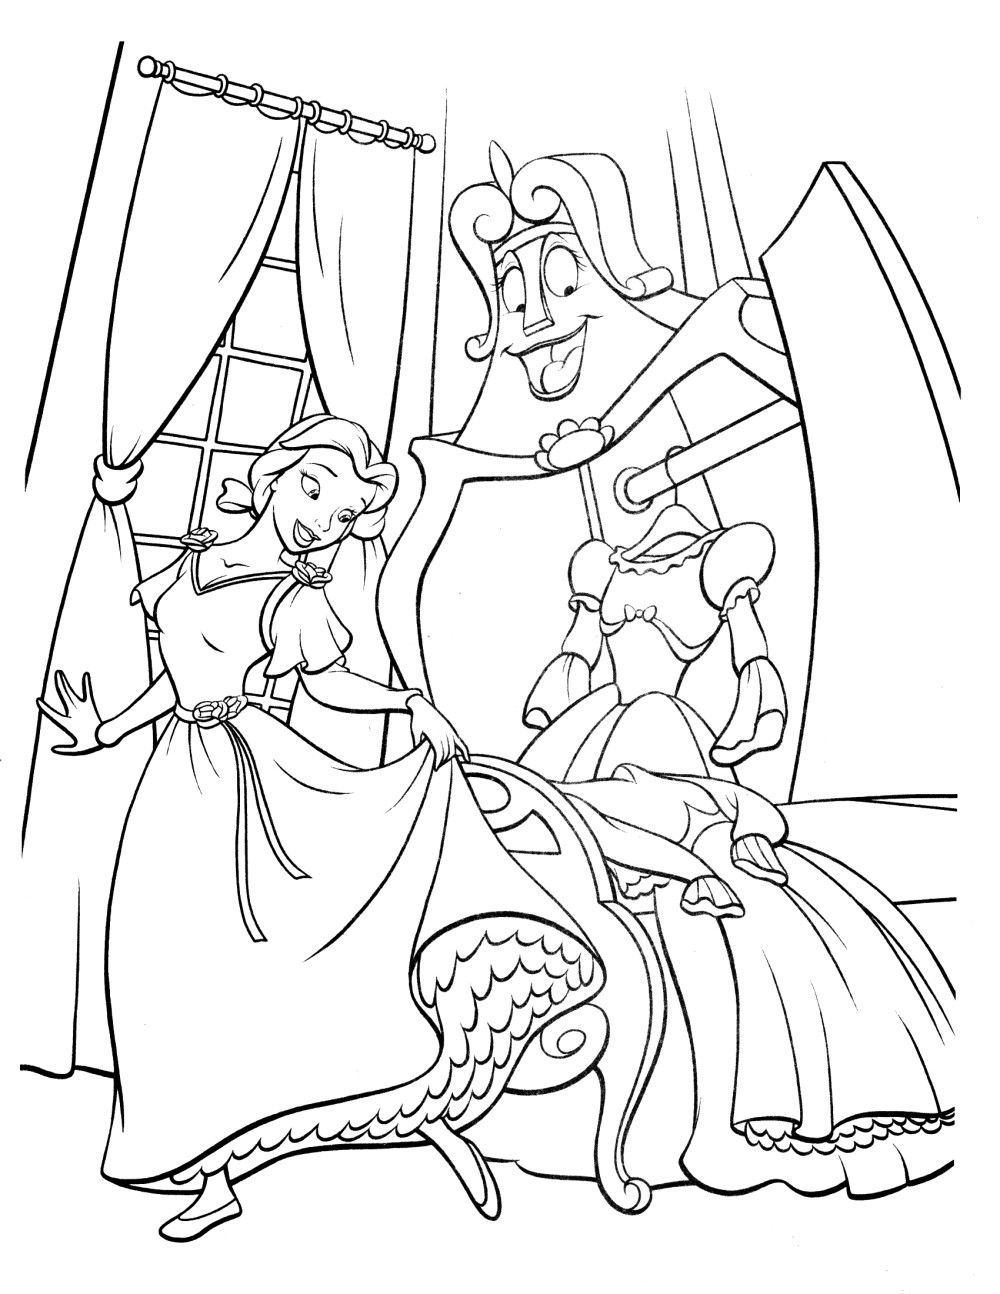 Beauty and the Beast Childrens' Coloring Pages